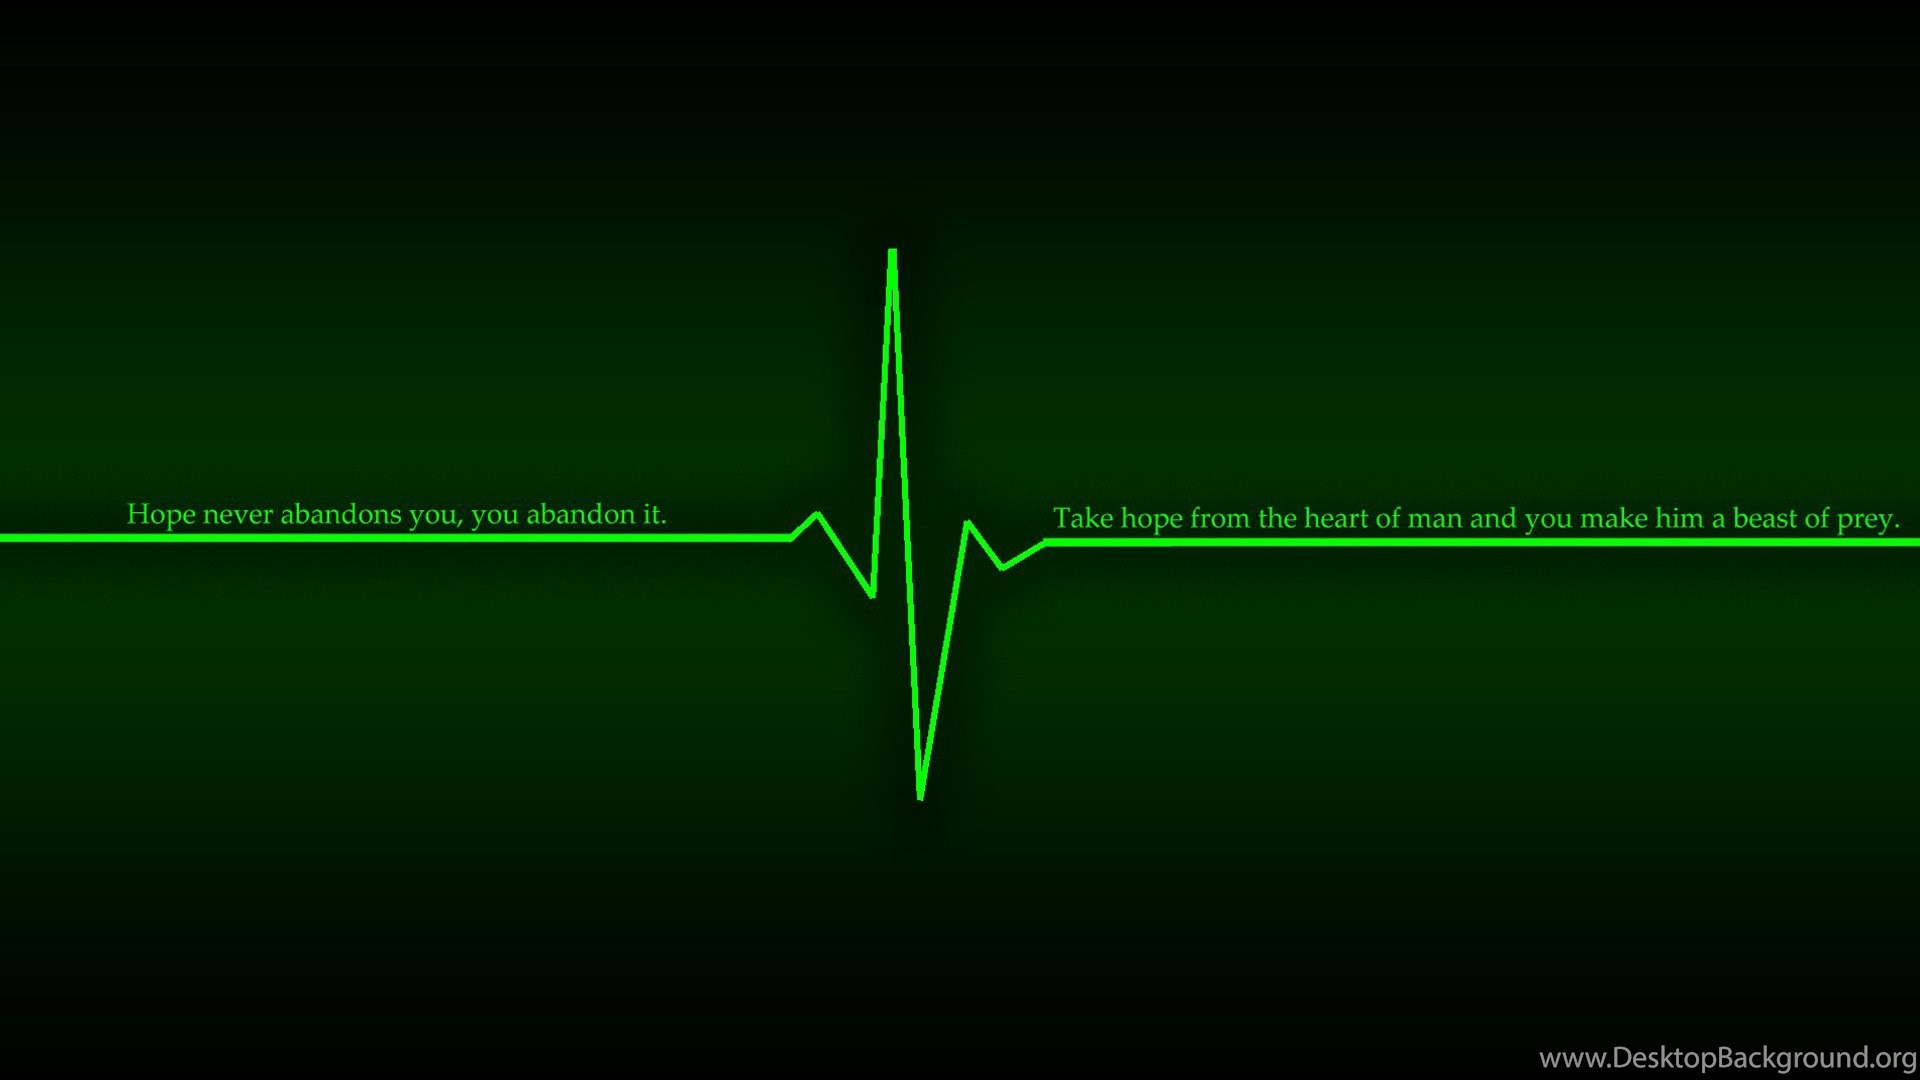 591972 ecg wallpapers green backgrounds pictures and